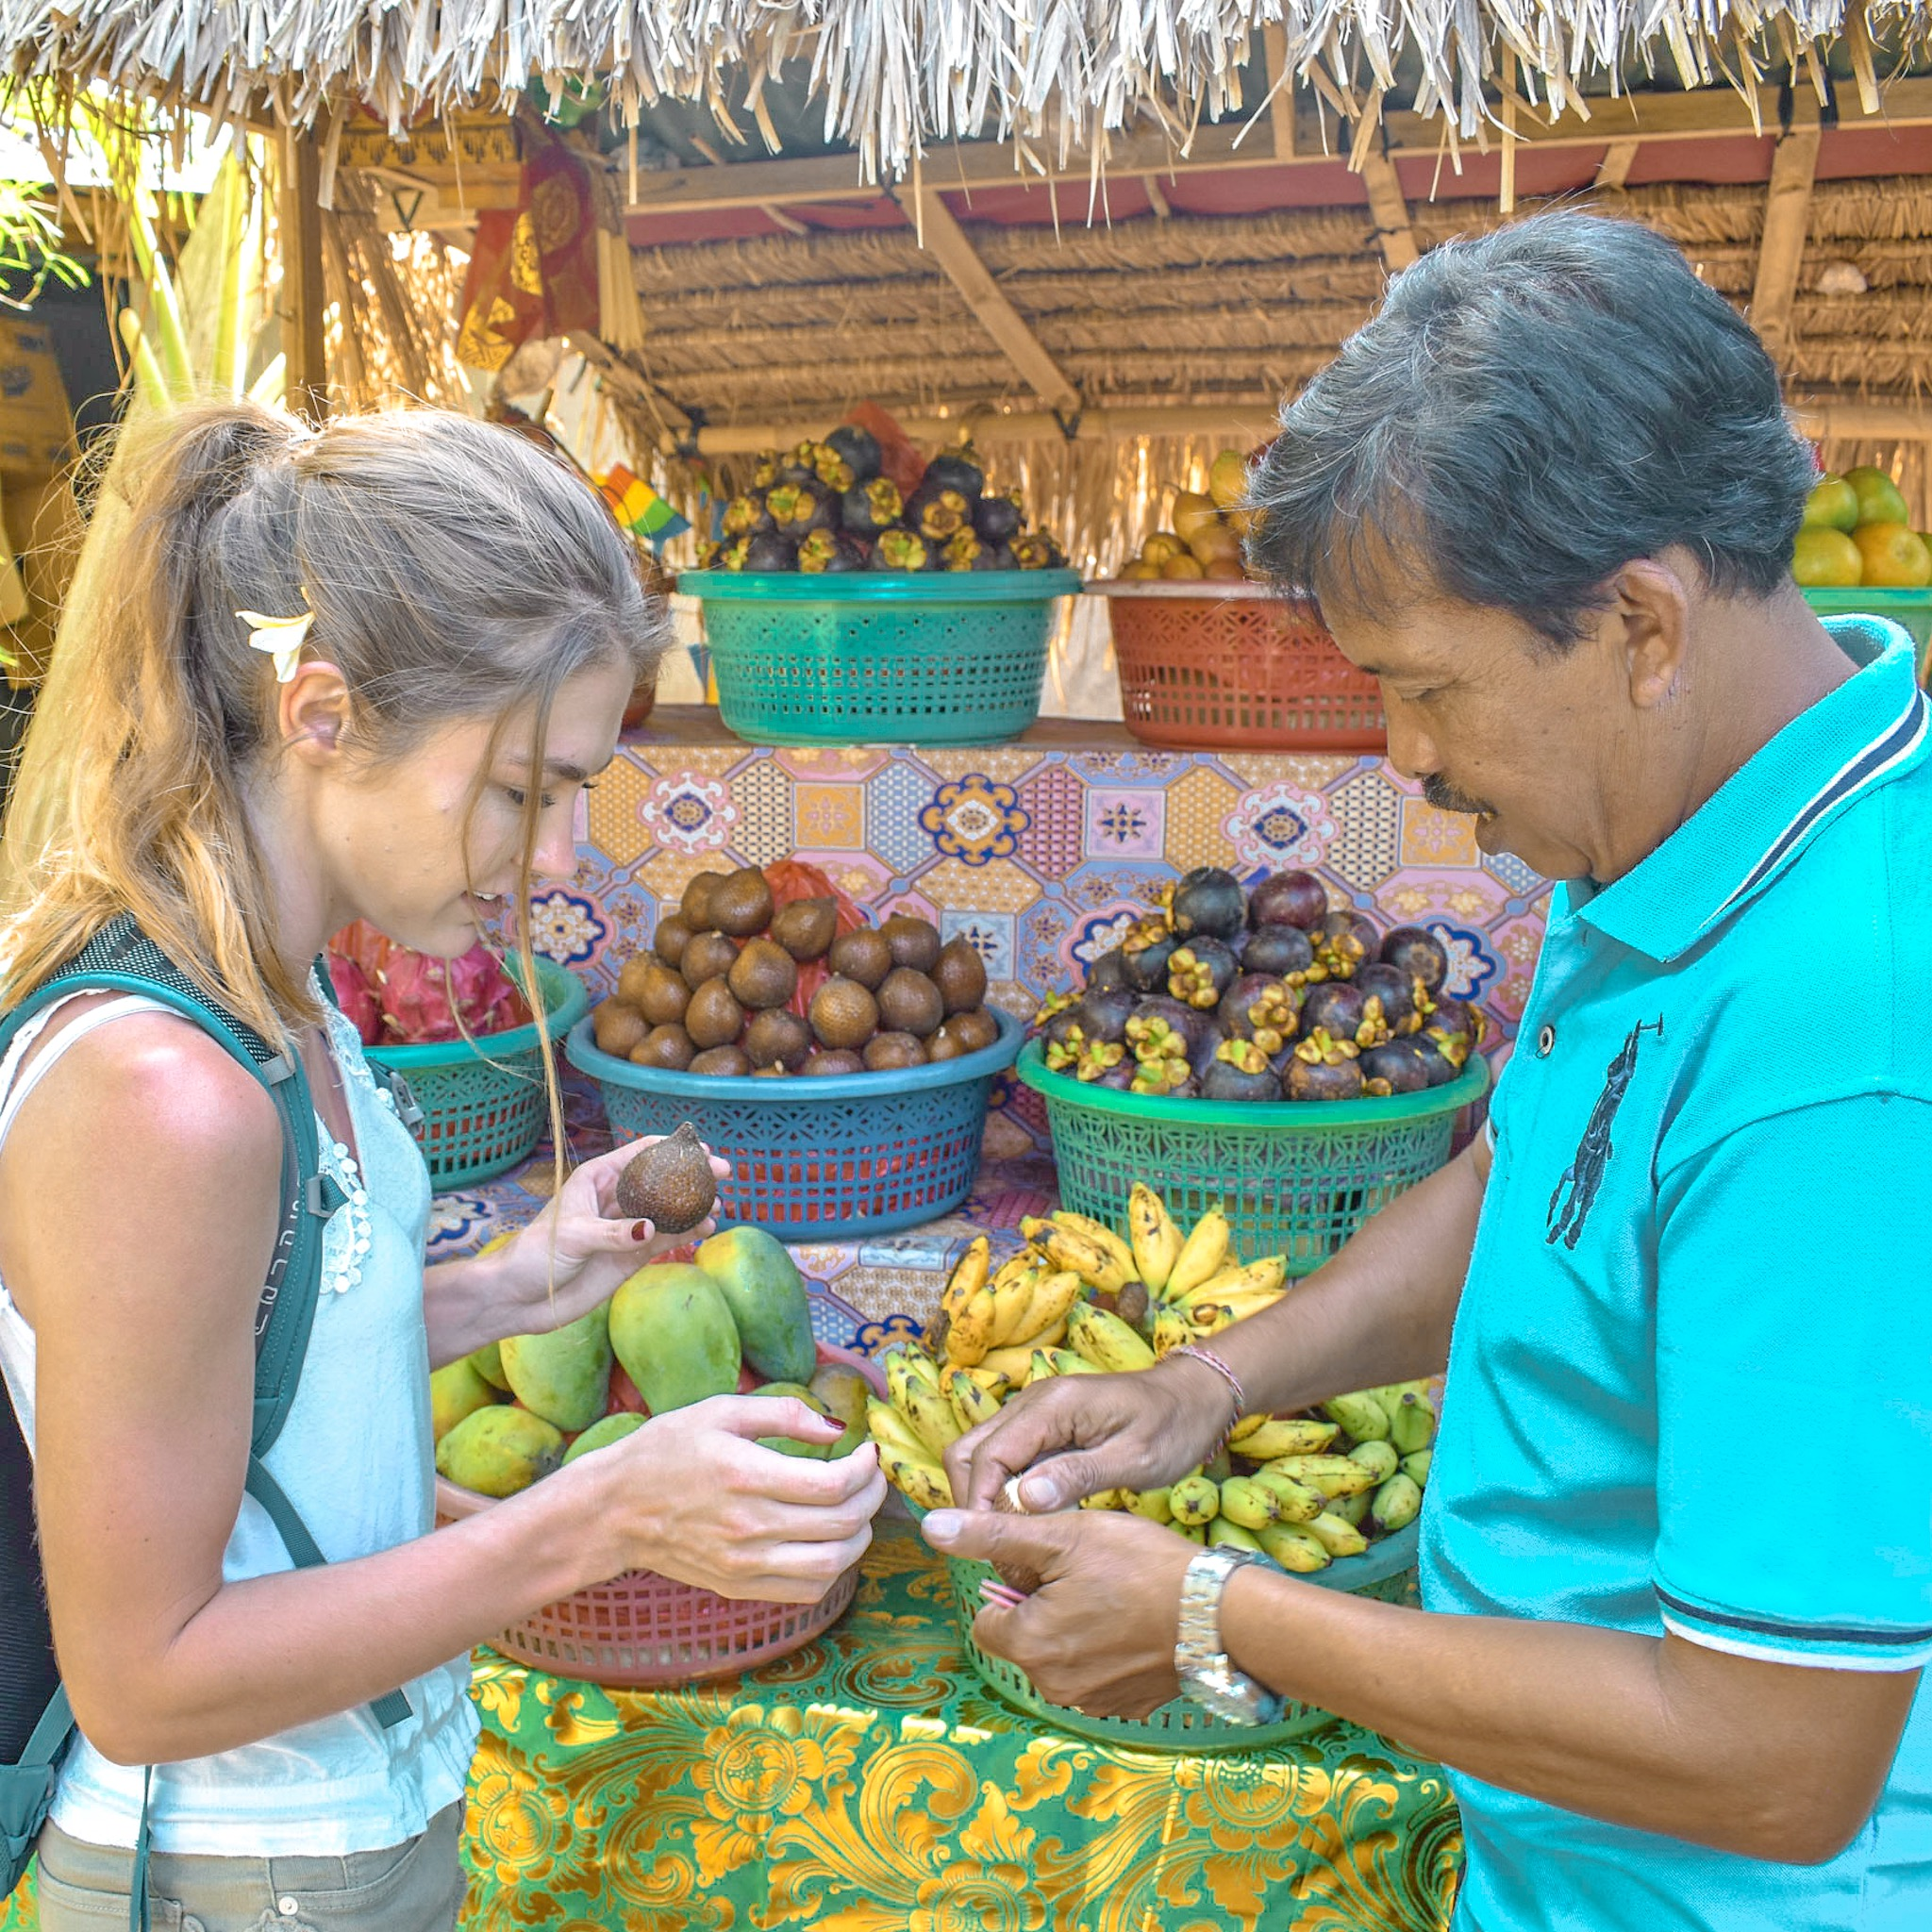 Woman Learns About the Native Fruits in Bali